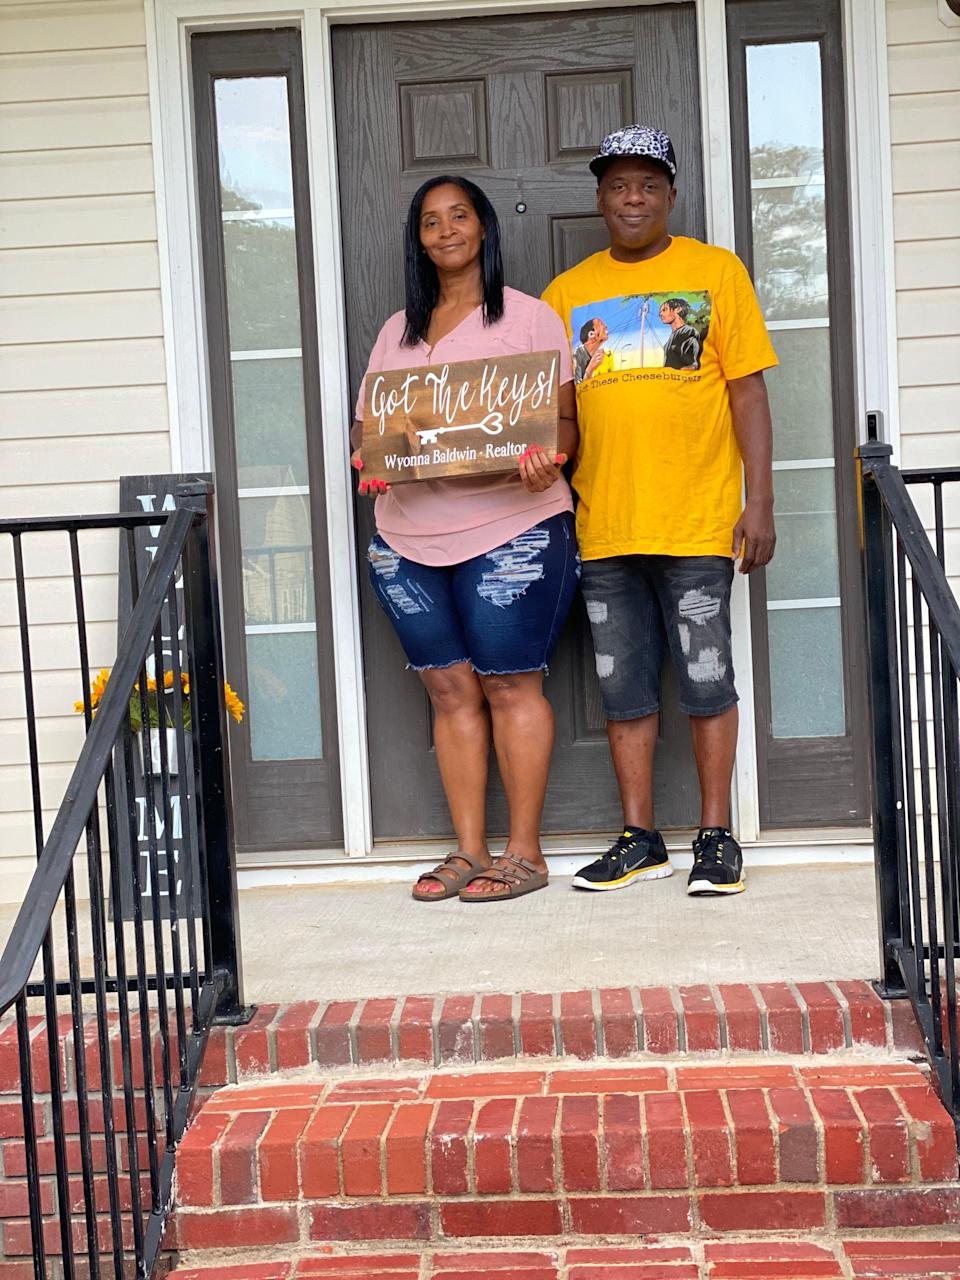 Nikki and John Daniel became first-time homebuyers in McCalla, Alabama, in August after realizing that their mortgage payments would be less than their monthly rent.